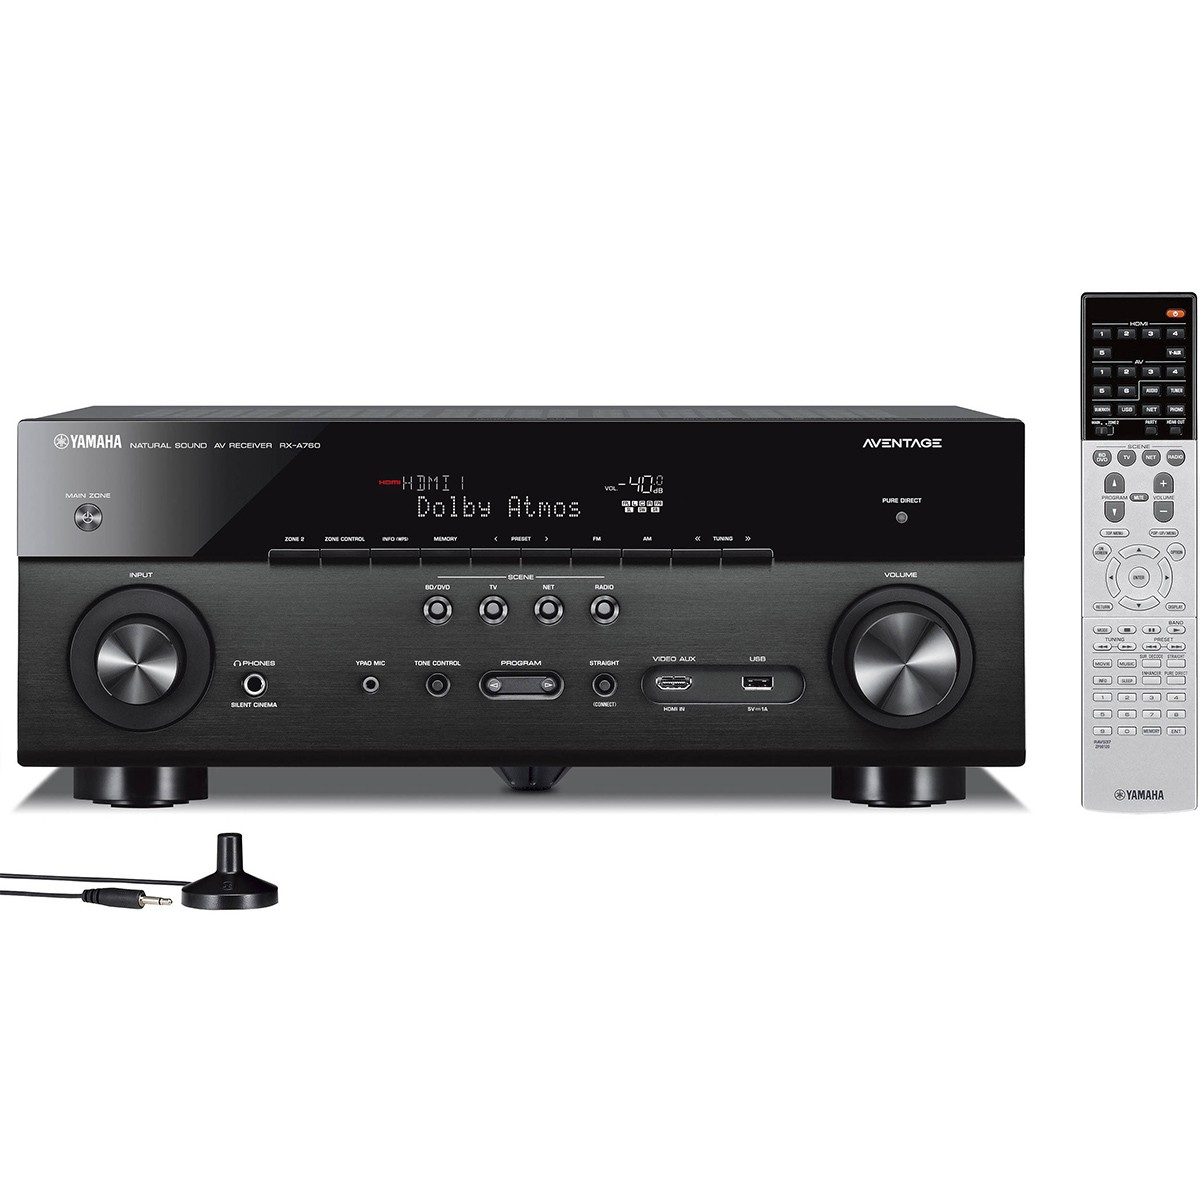 receiver yamaha rx a860 review yamaha rx a860. Black Bedroom Furniture Sets. Home Design Ideas